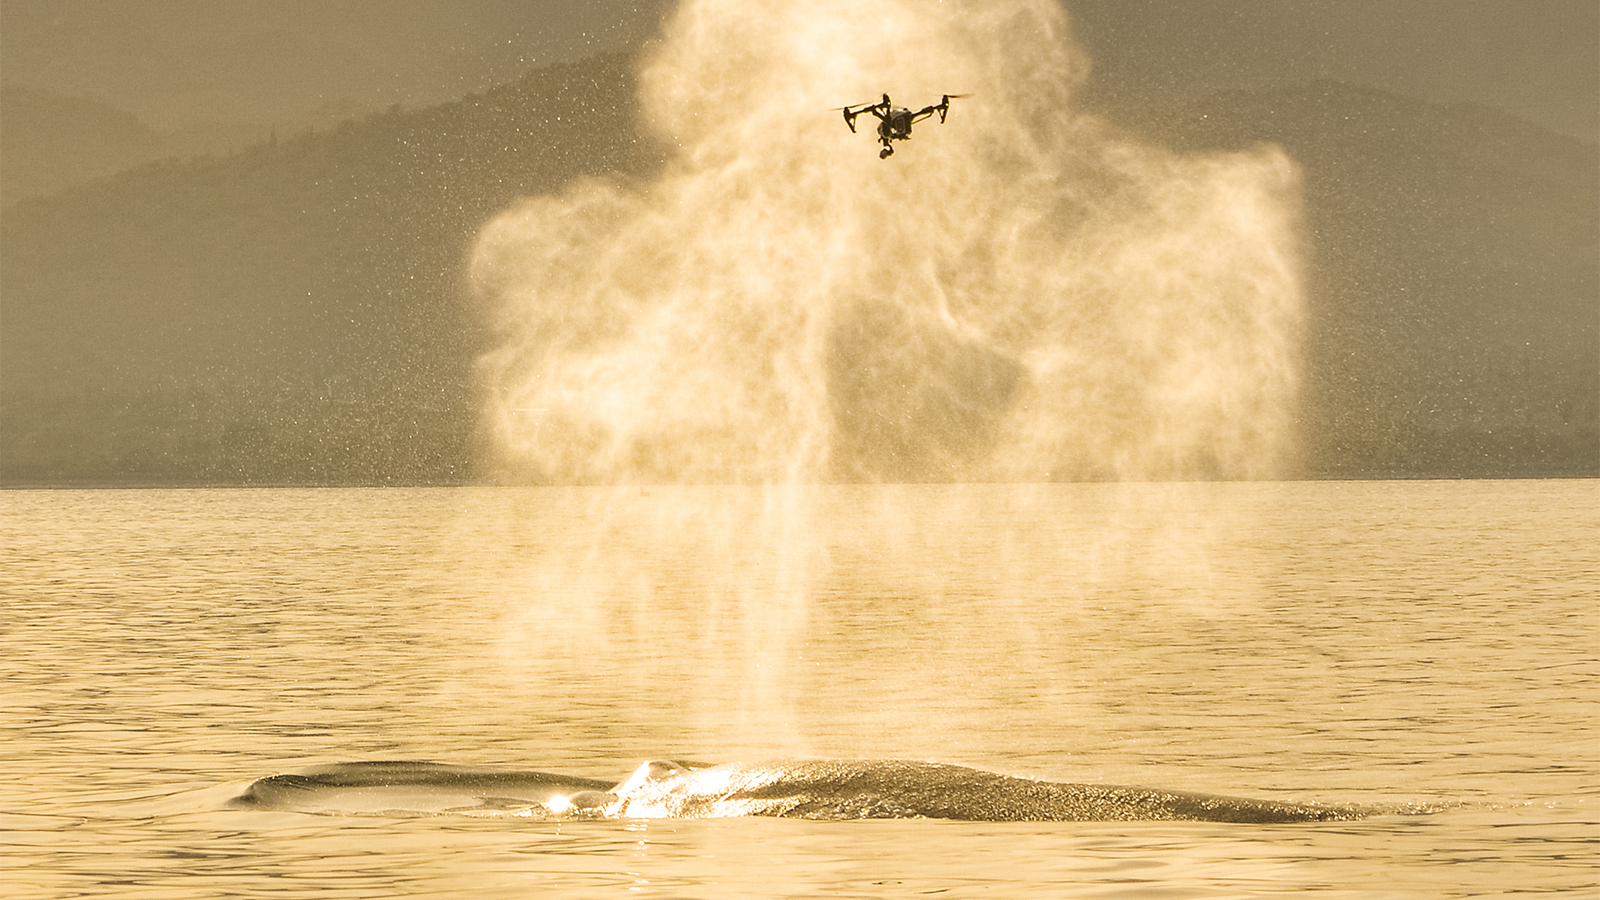 The 'SnotBot' Drone Is Making Scientific Research Easier on Whales